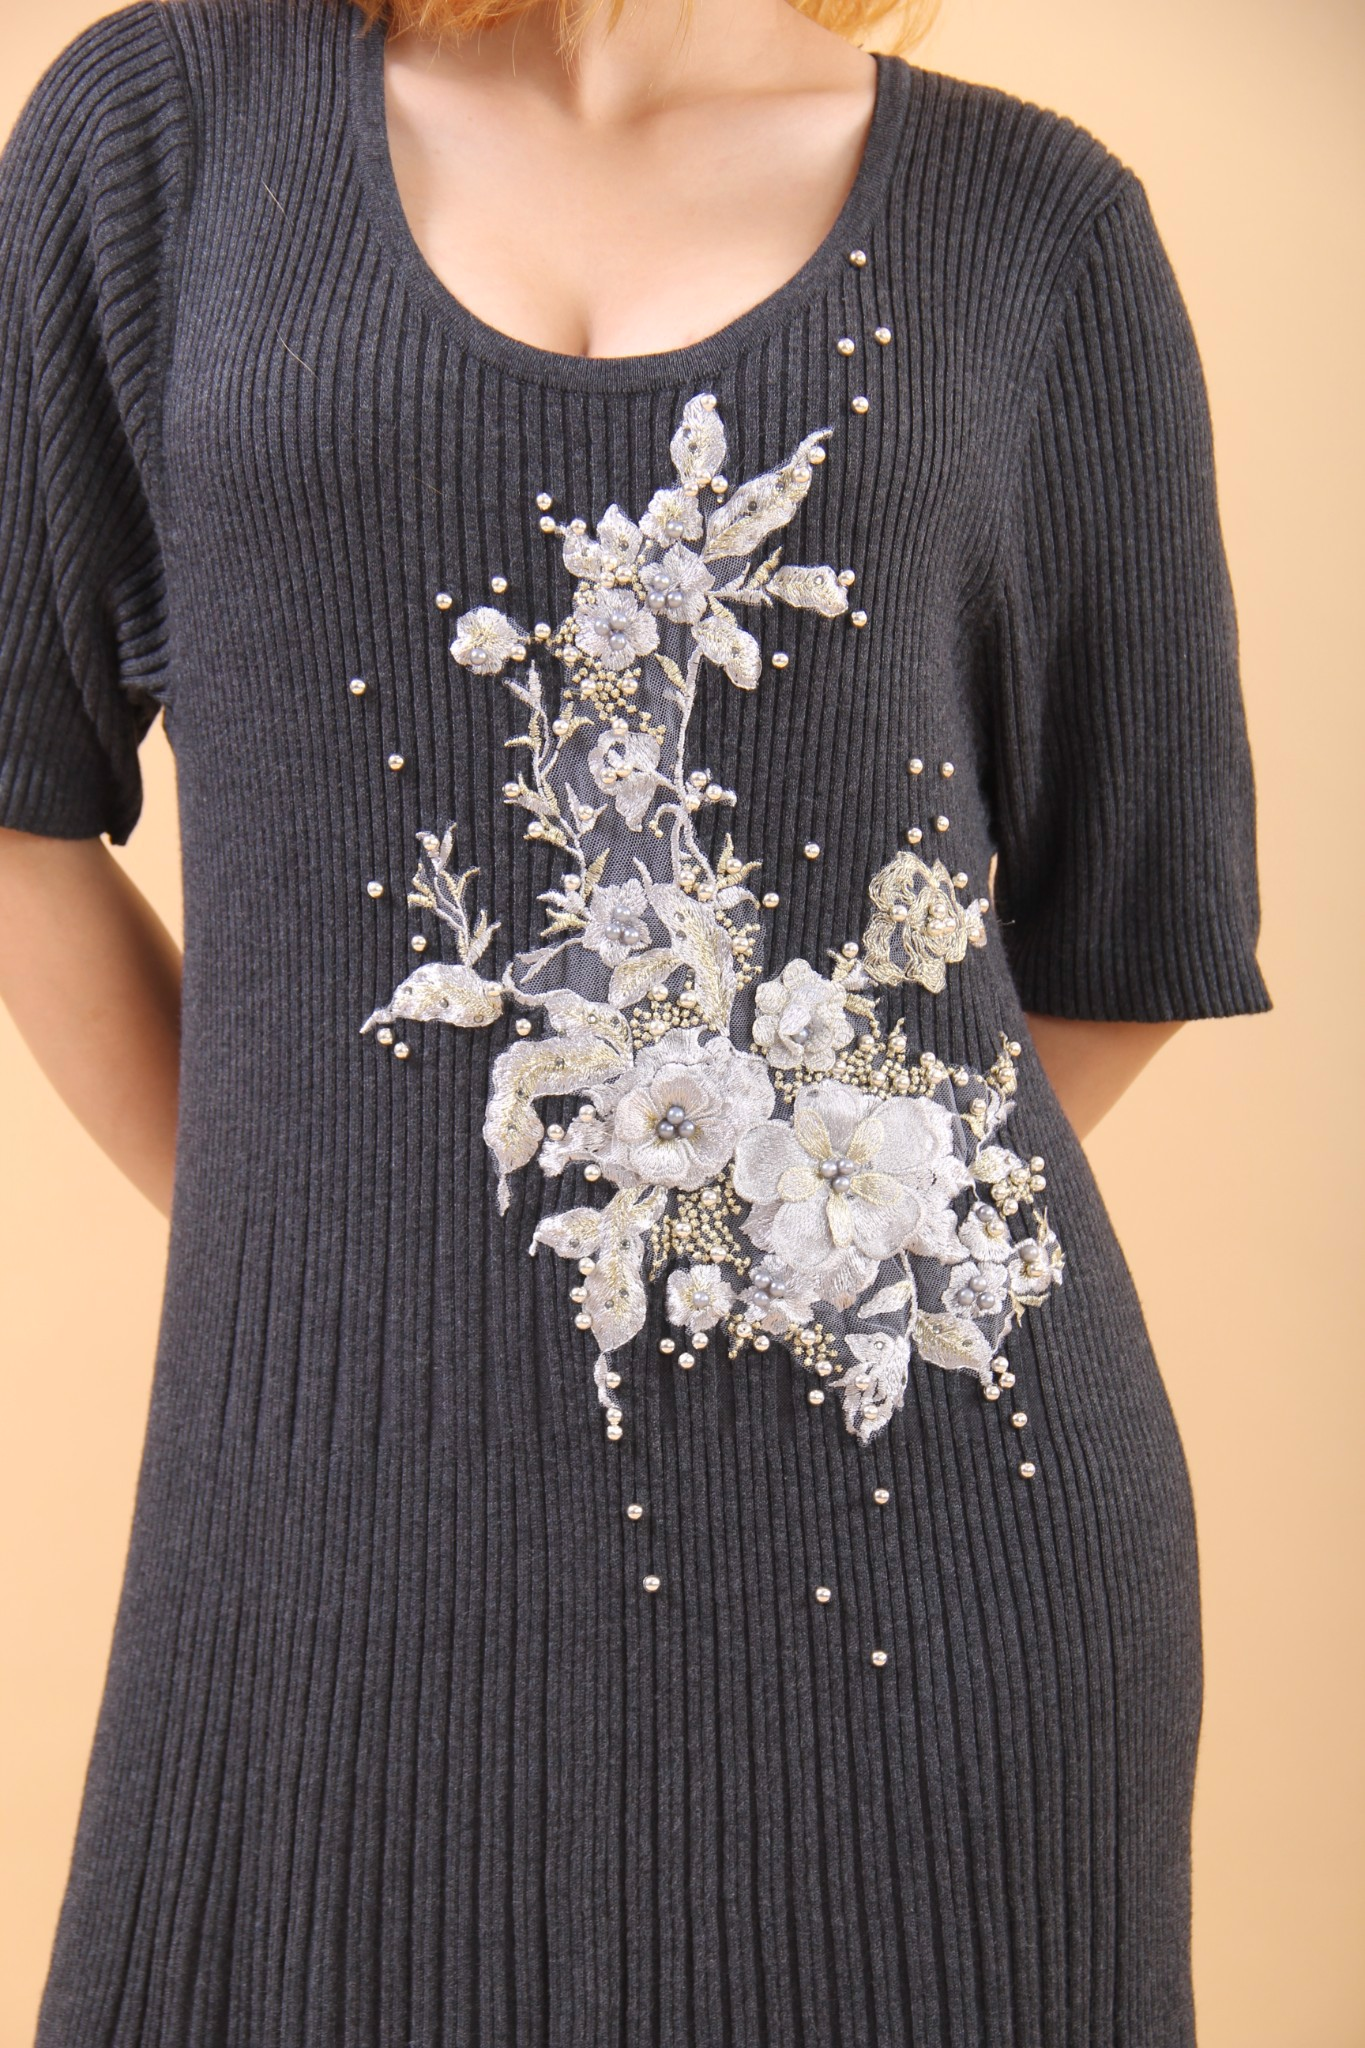 3D embroidery grey shift dress